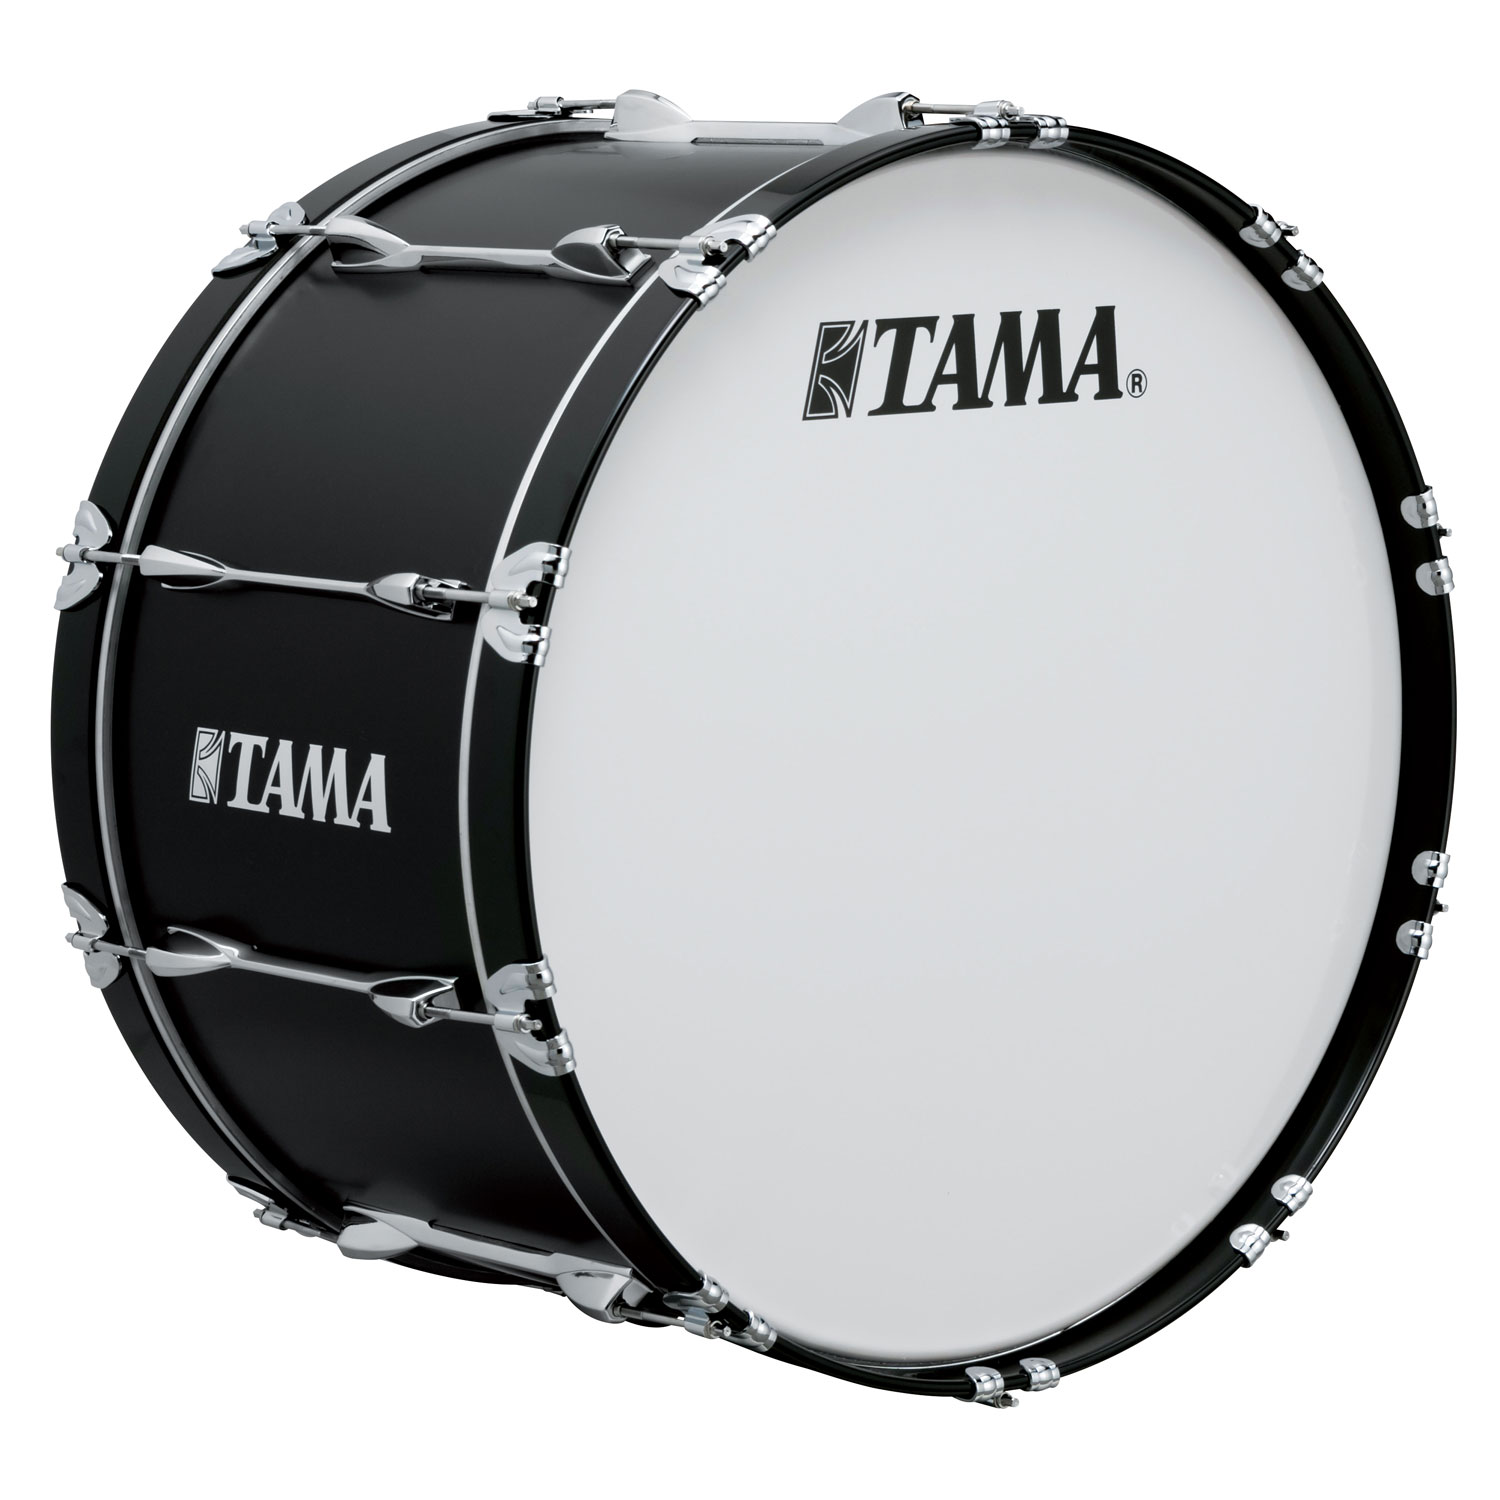 "Tama 28"" StarLight Marching Bass Drum in Satin Black Lacquer"